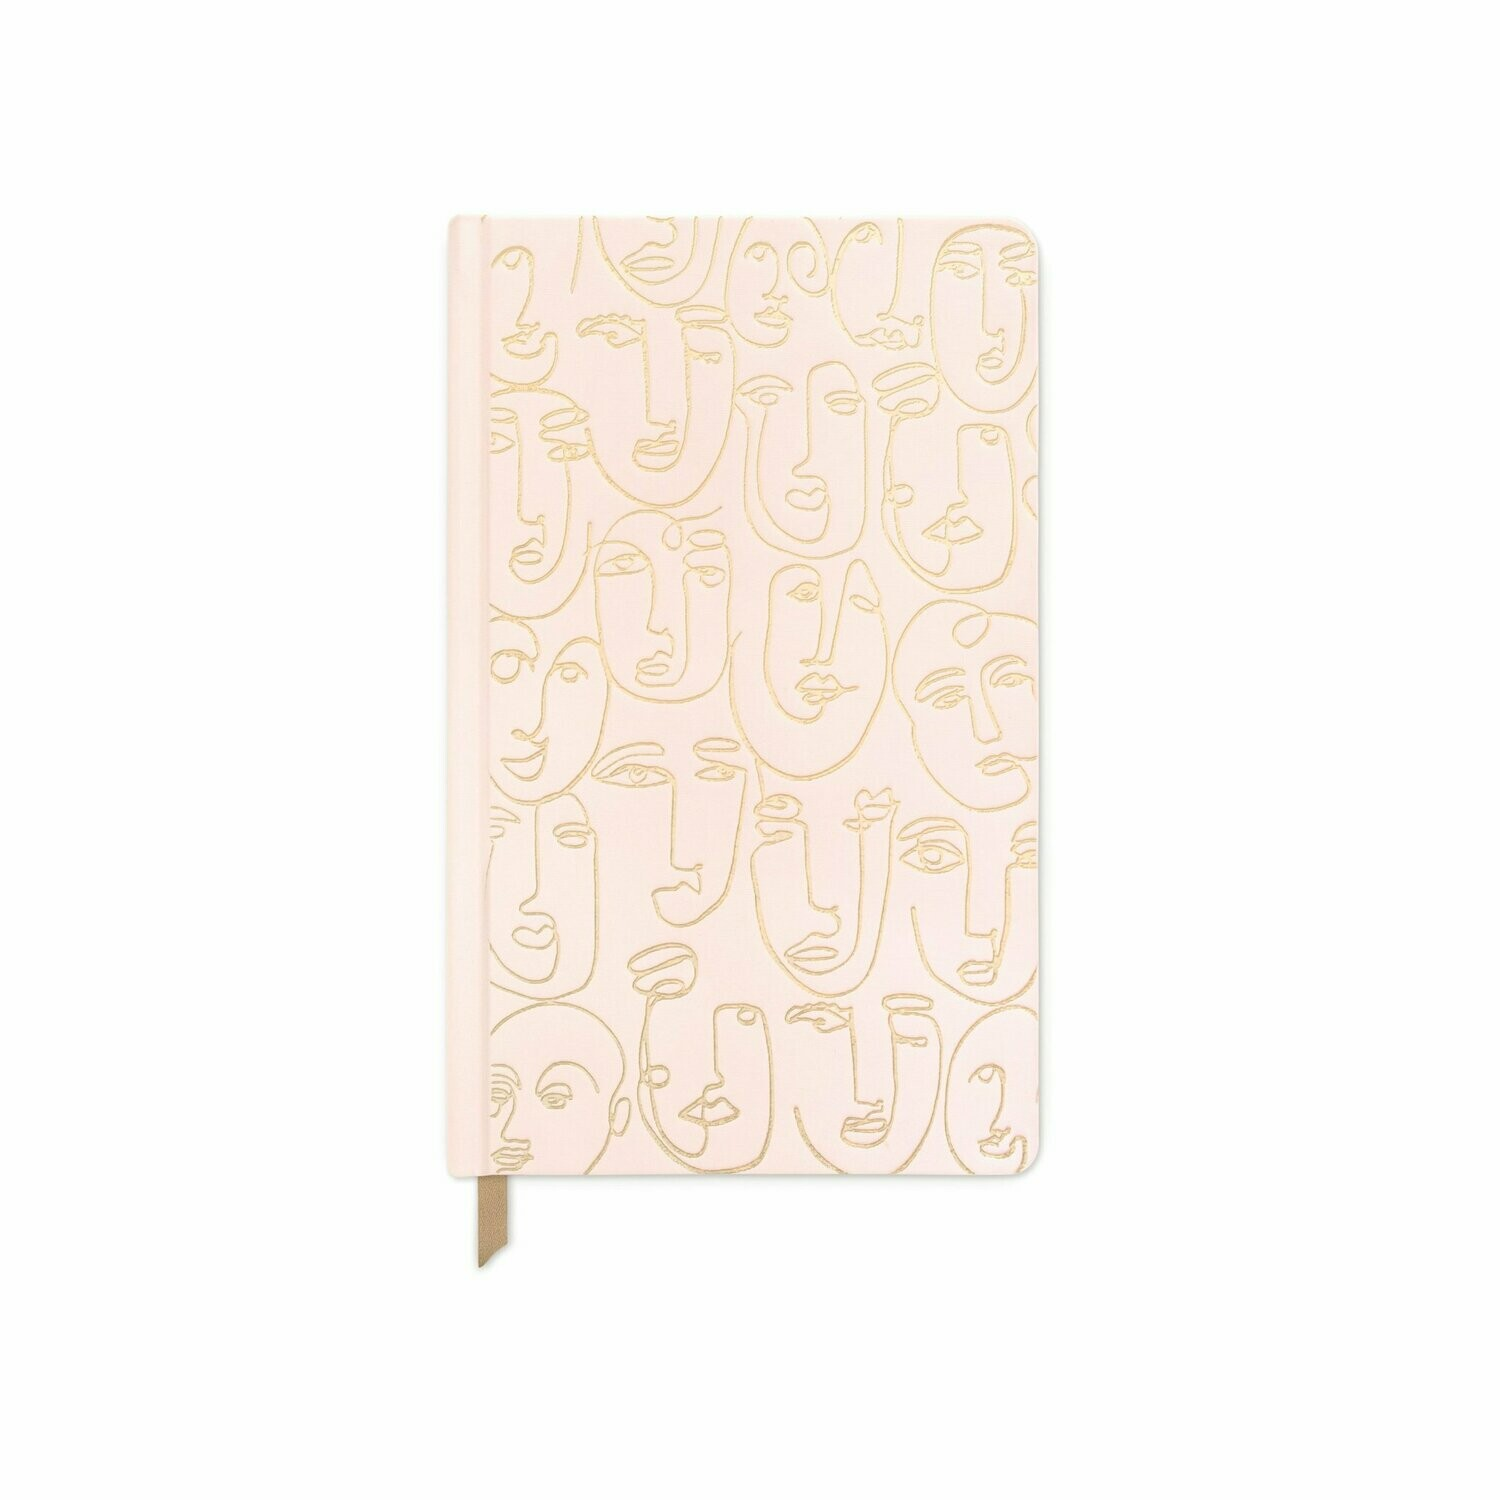 Faces- Cuaderno Tela